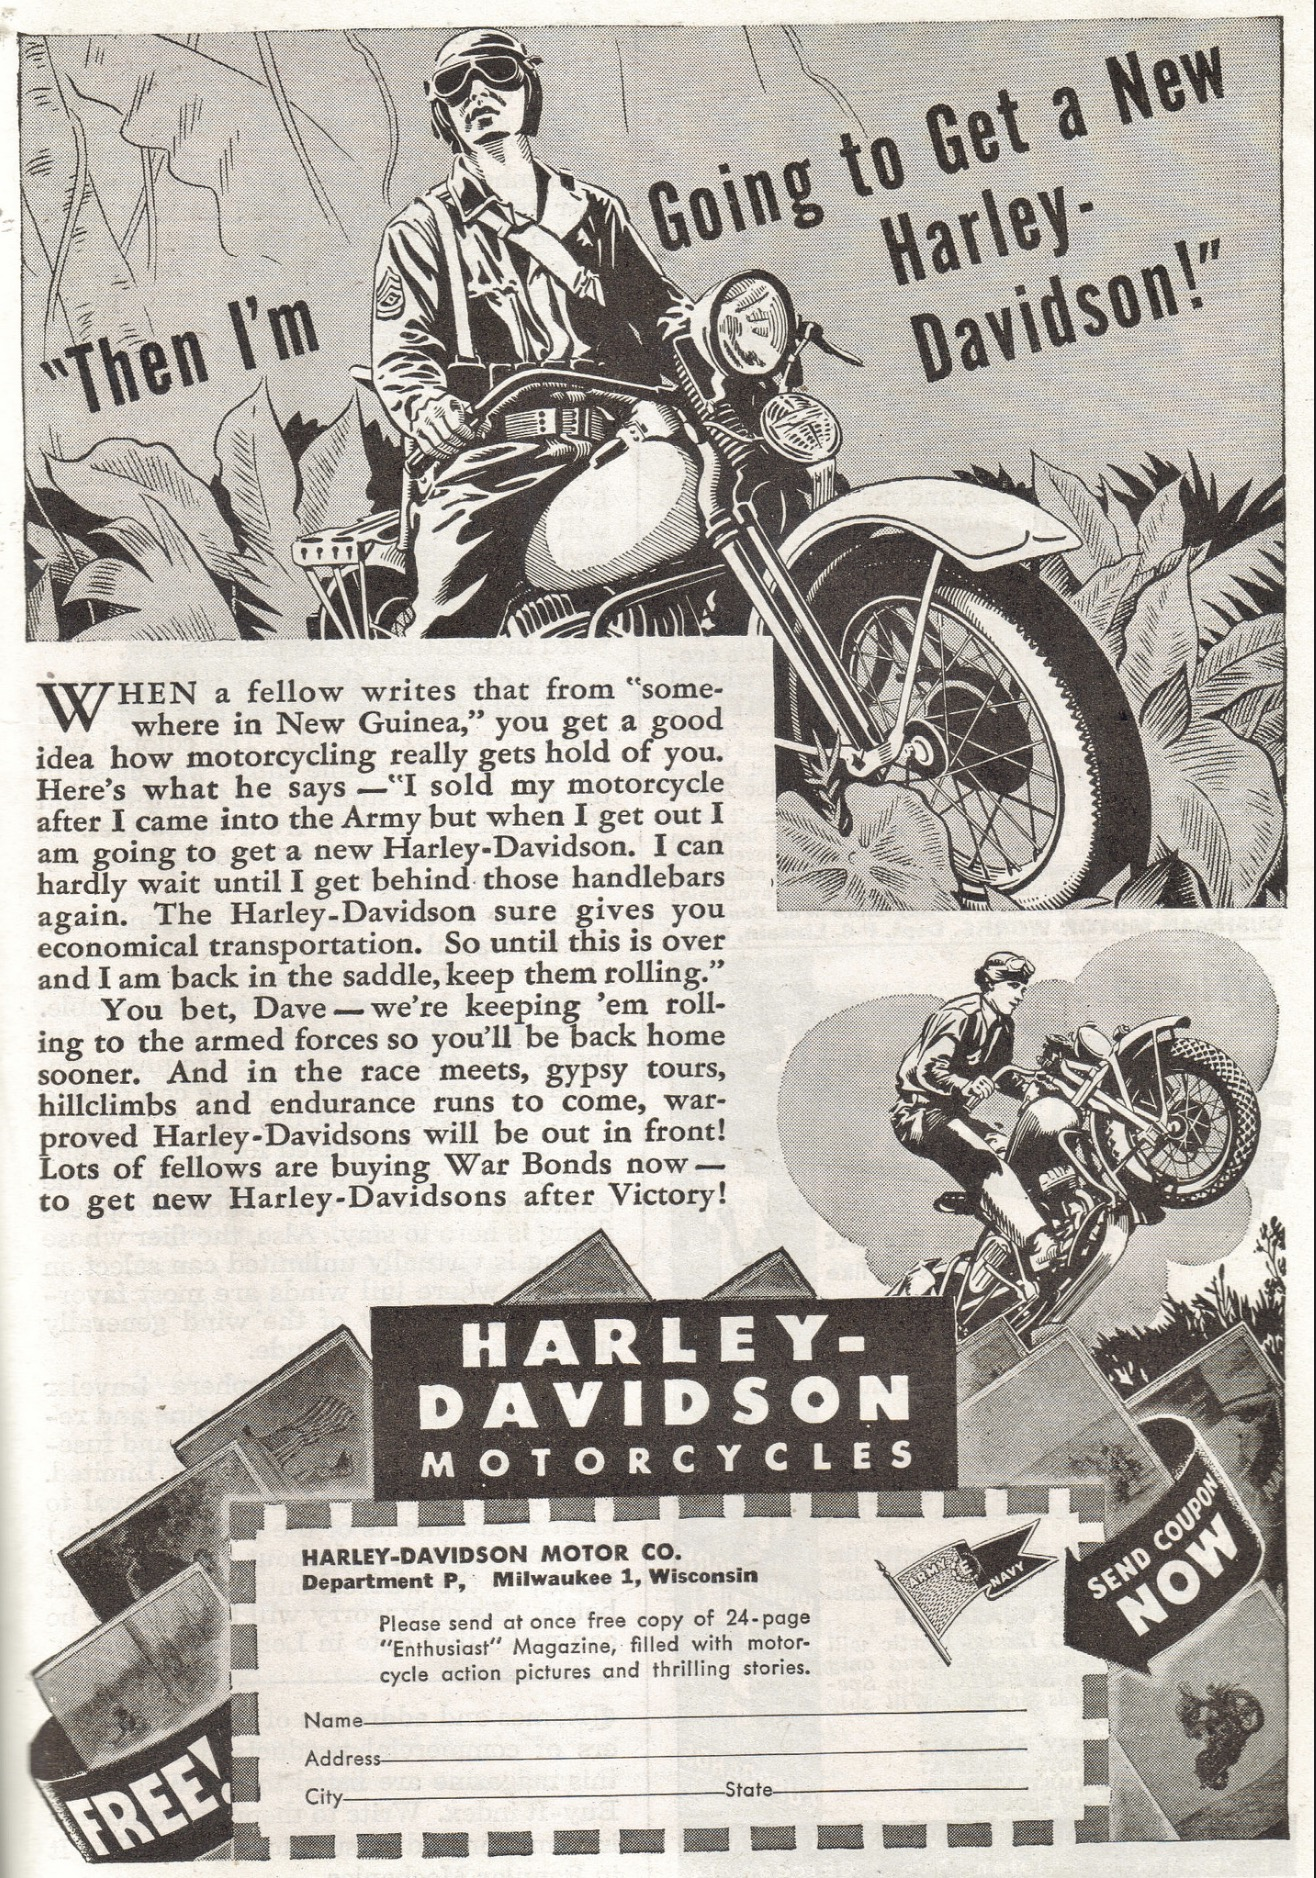 Then I'm going to get a new Harley-Davidson